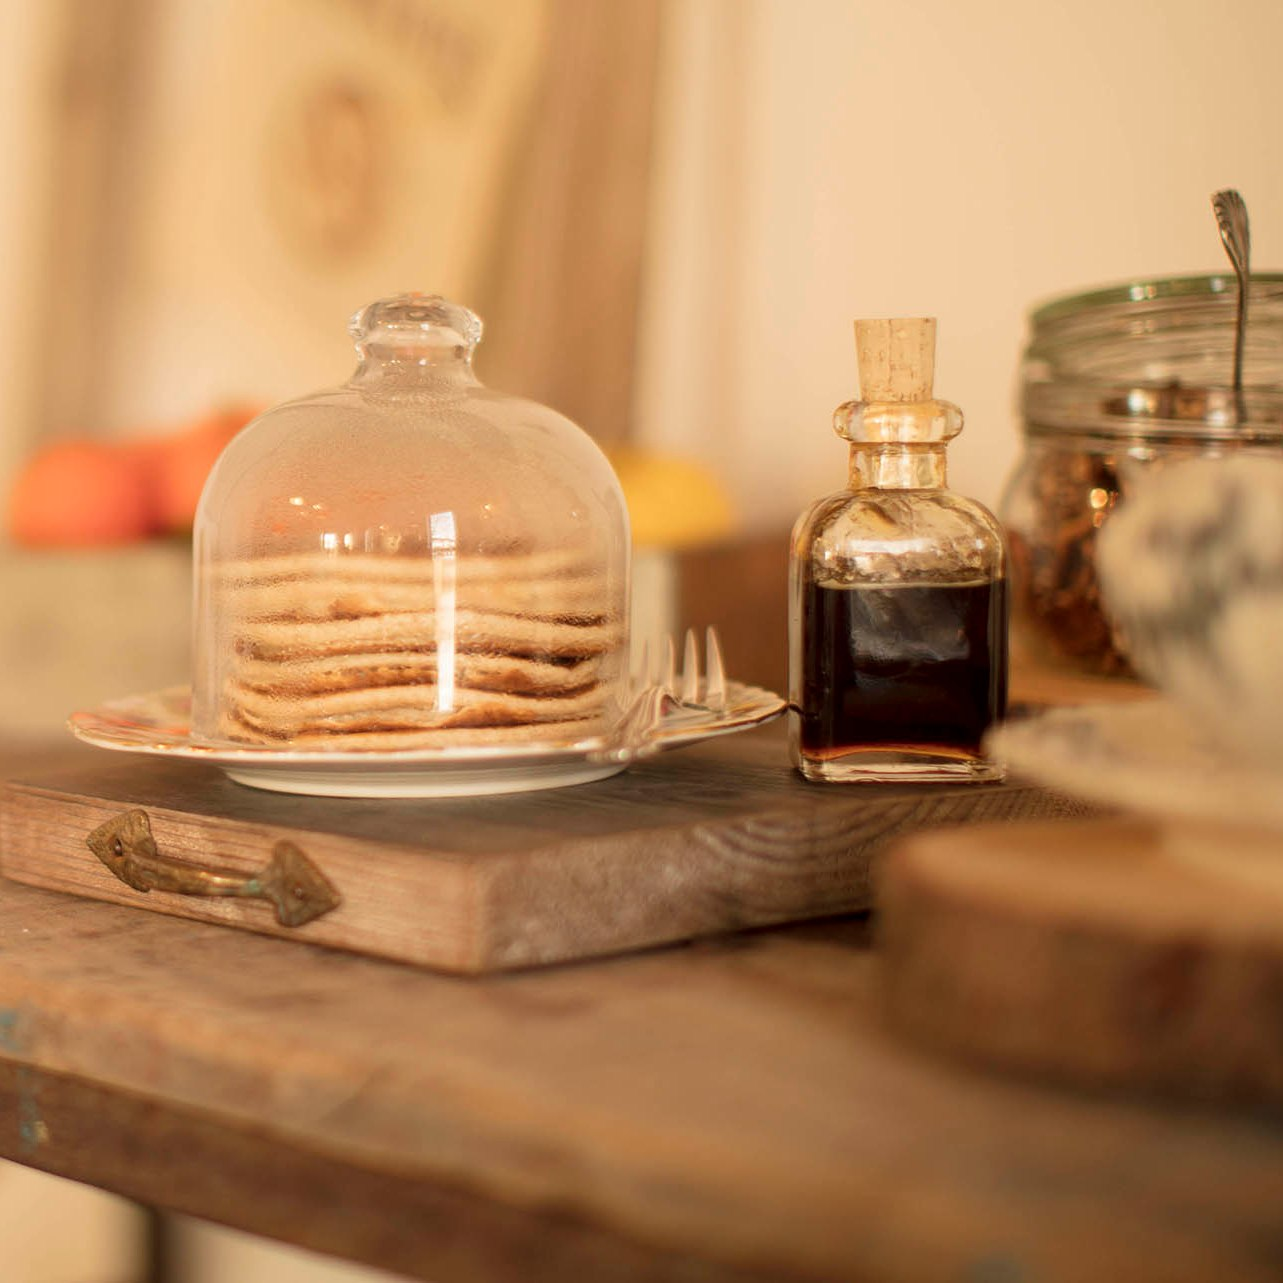 Breakfast with pancakes in countryside style decor